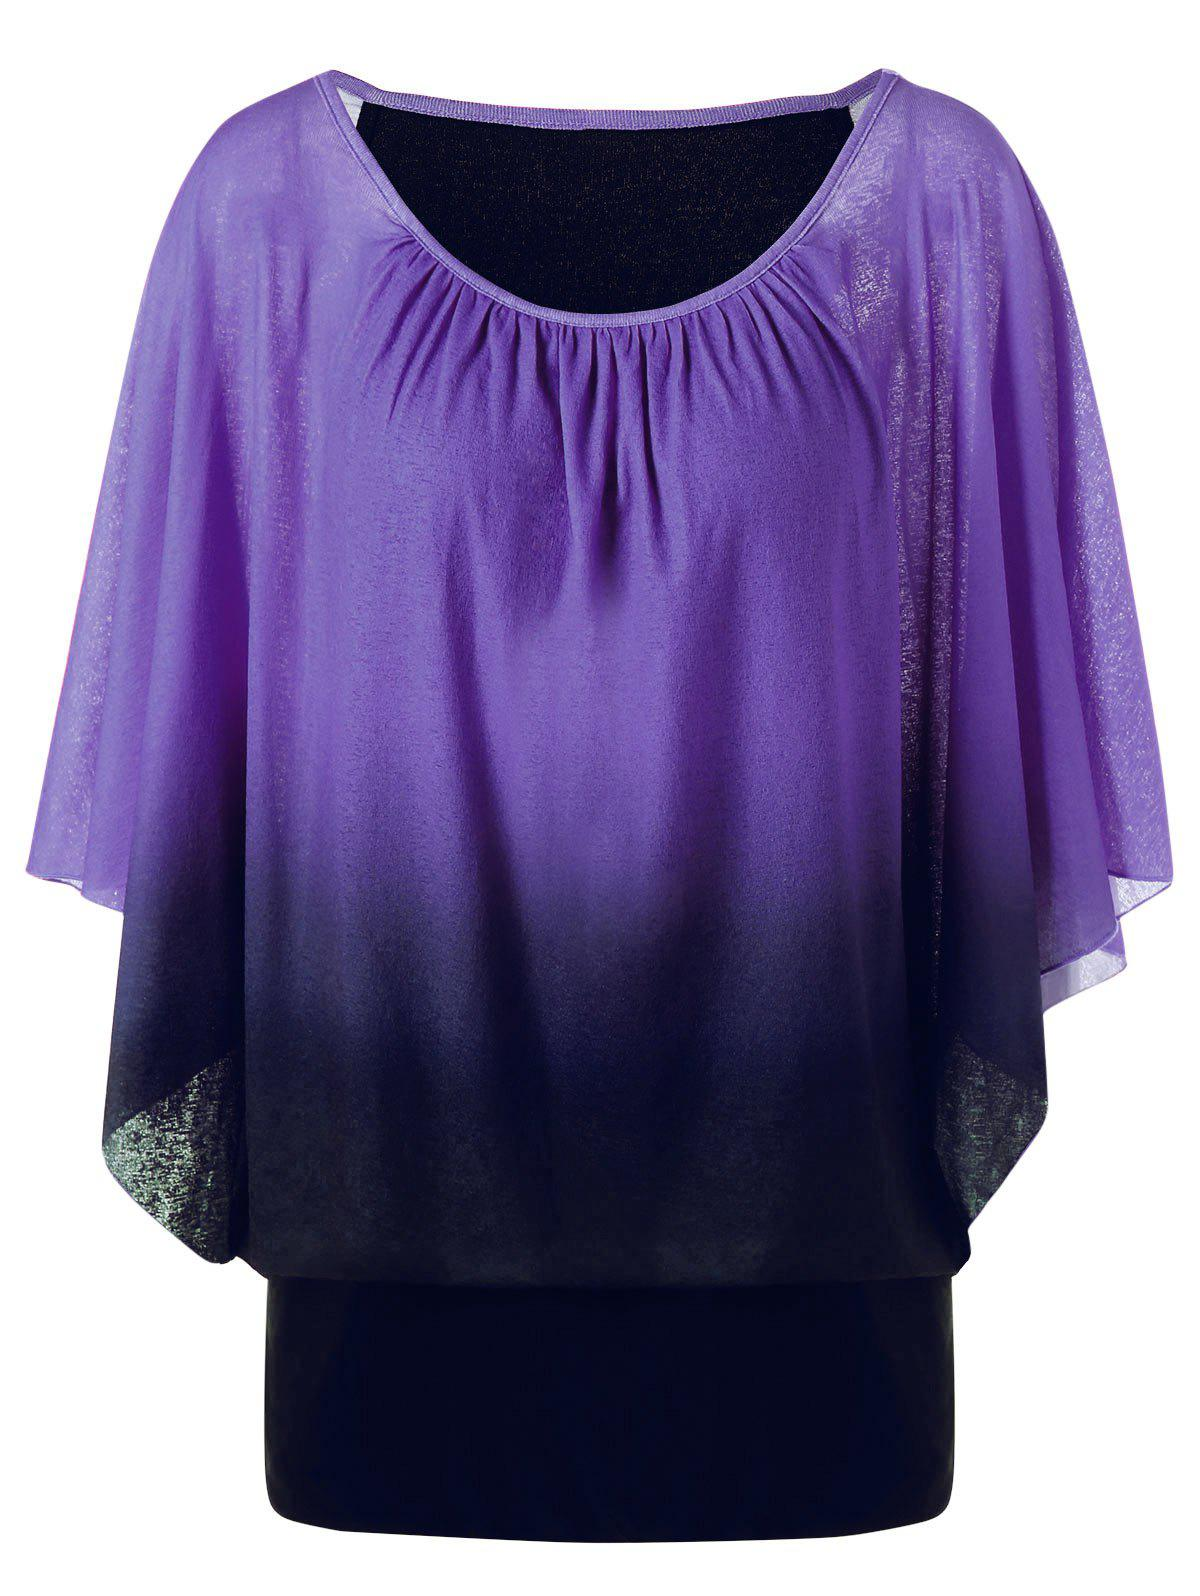 Plus Size Ombre Butterfly Sleeve T-Shirt butterfly sleeve rhinestone embellished plus size t shirt